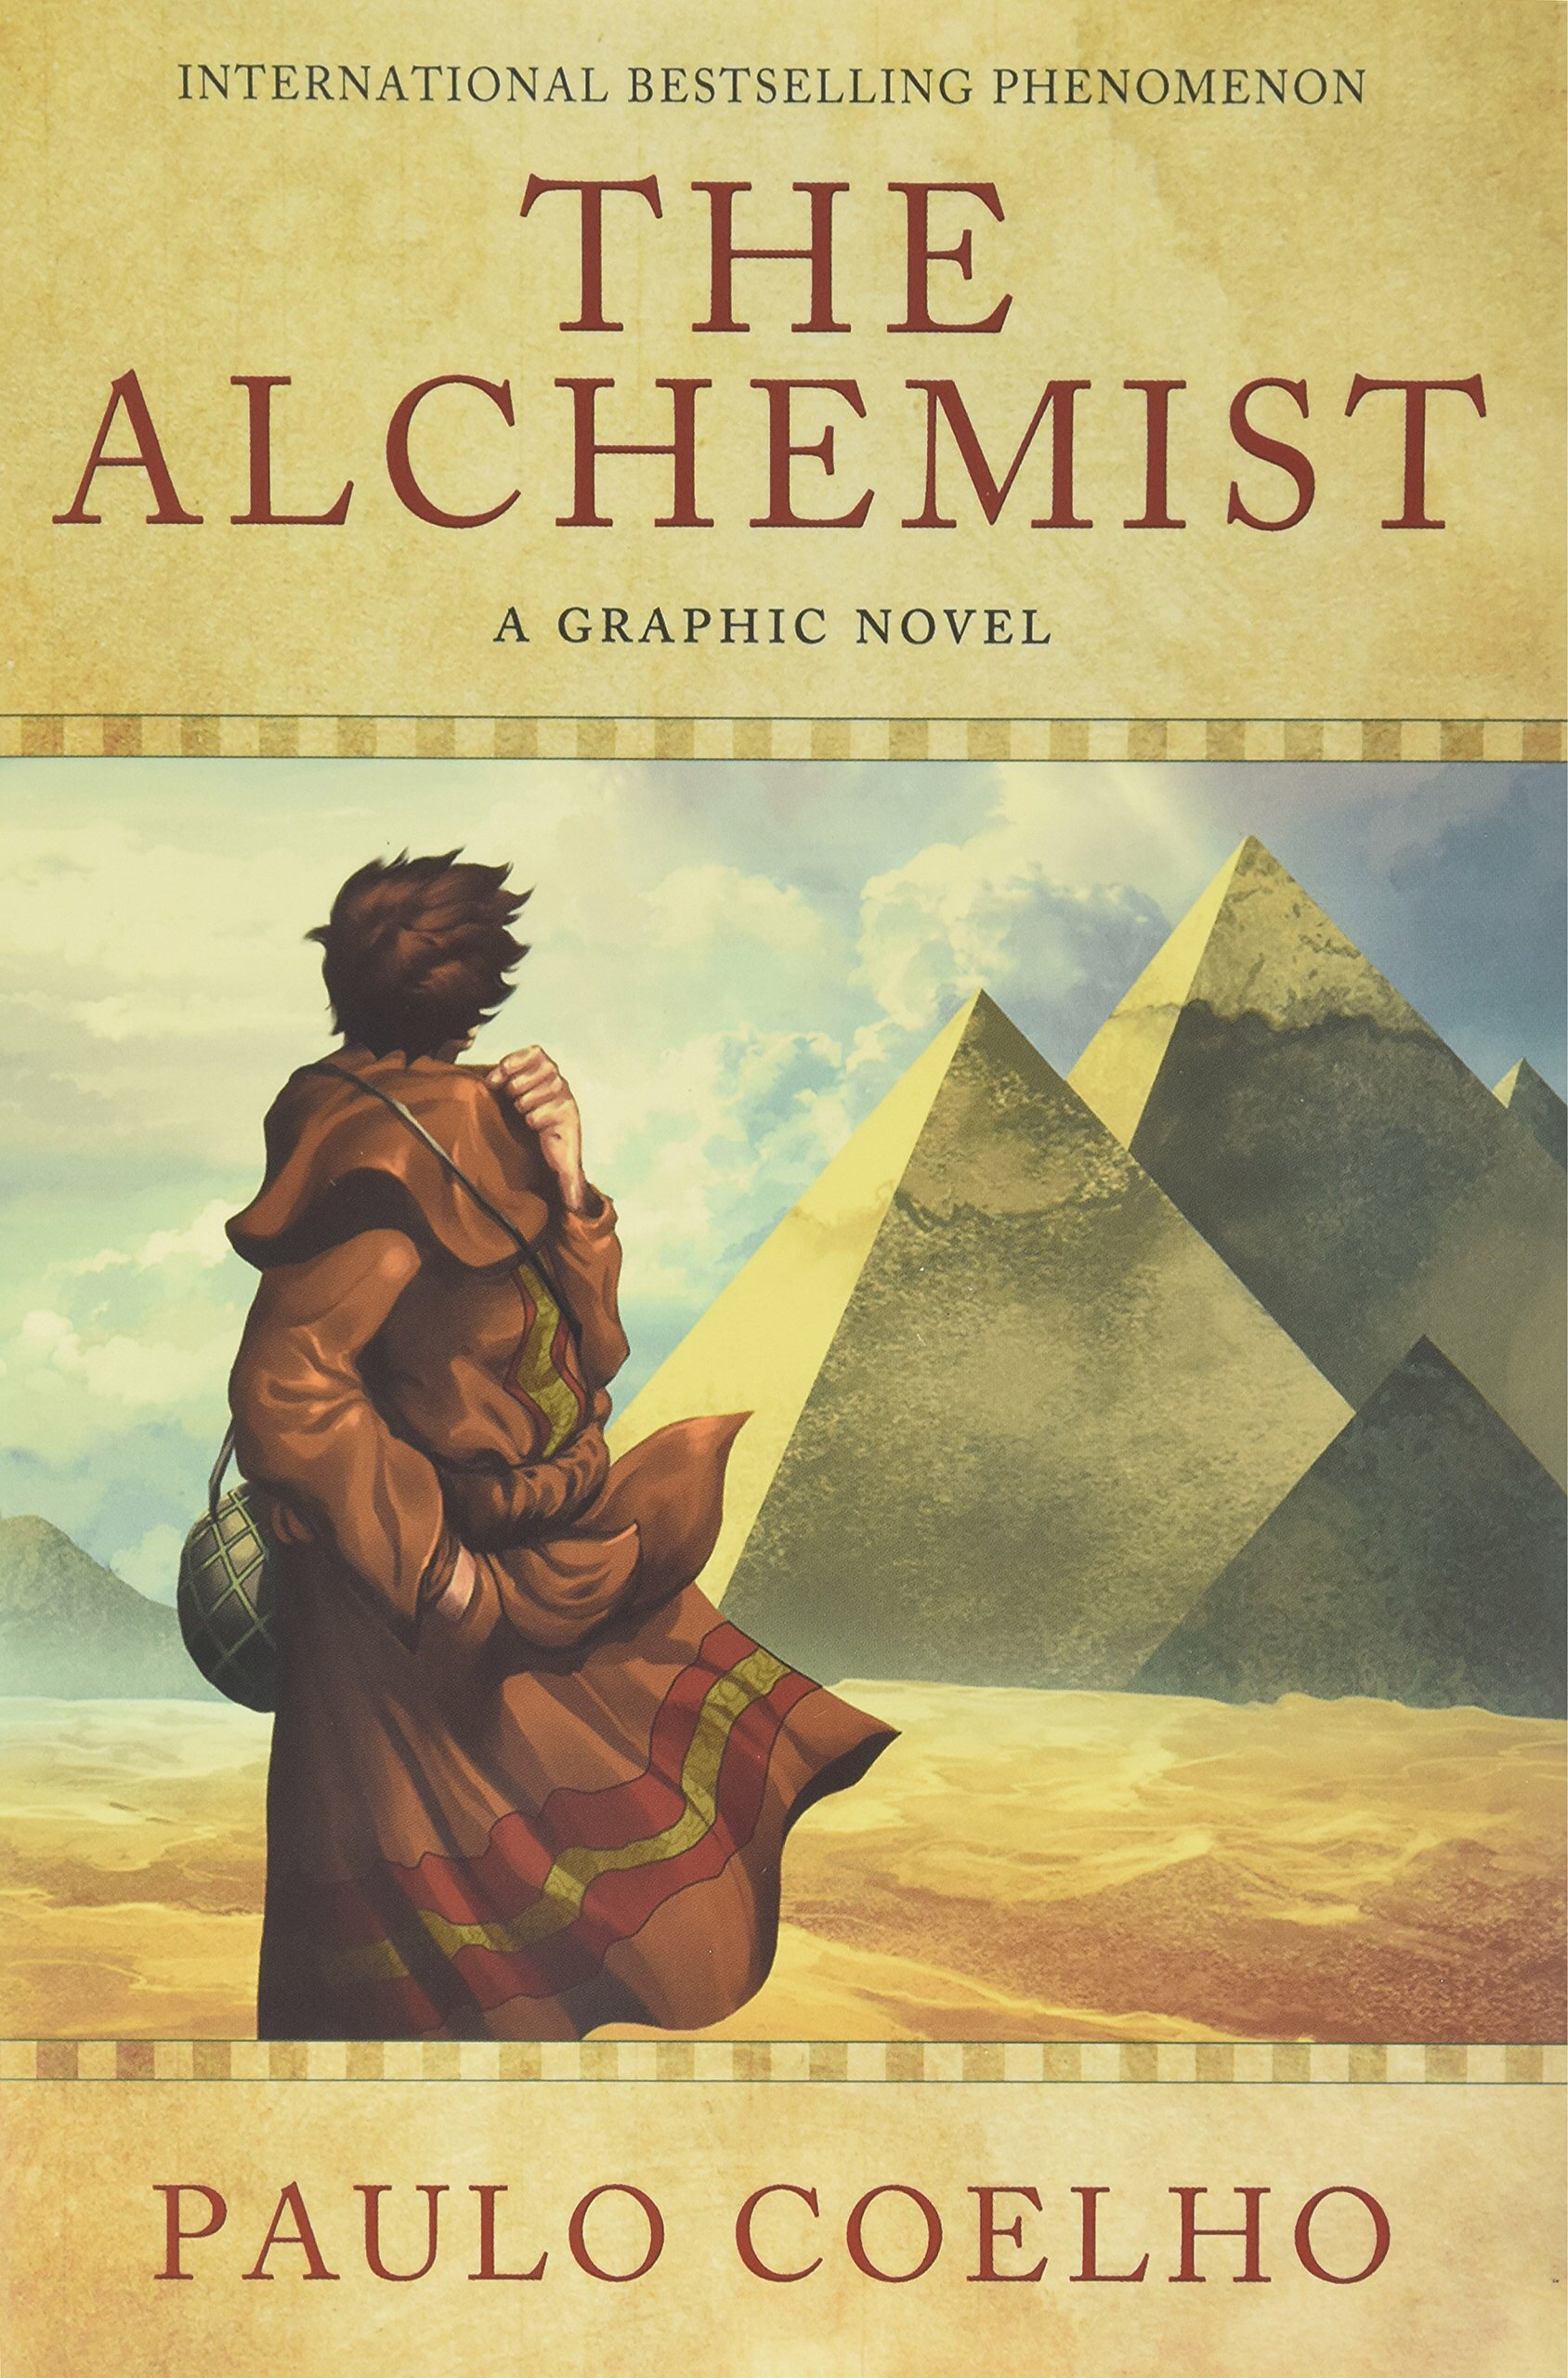 alchemista alchemista captivating his readers oprah asked coehlo how did you even come up this paulo discussed his life as a boy who never quite followed the norms